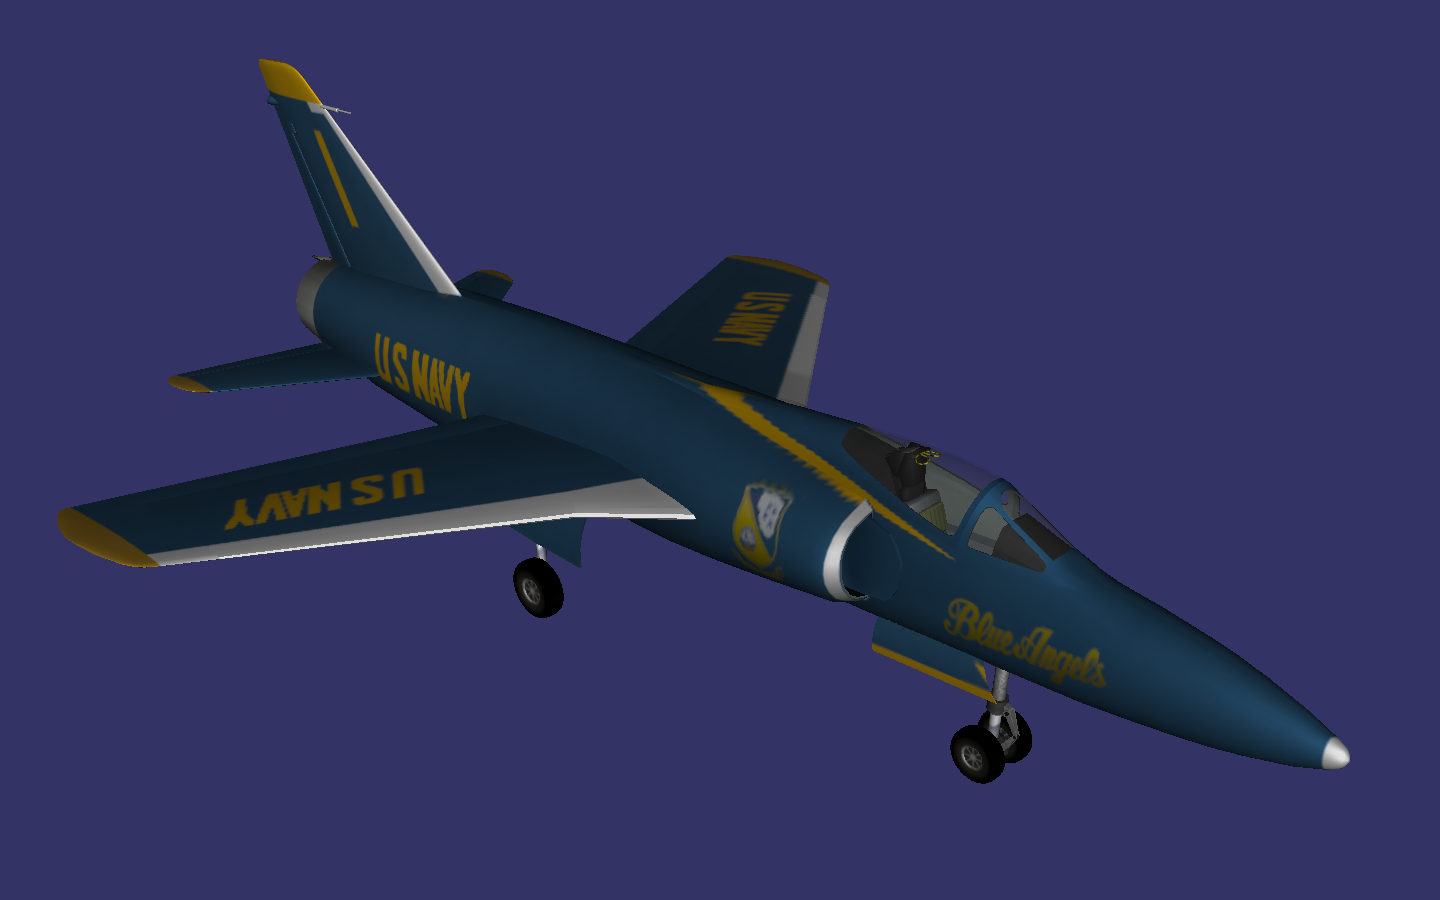 Grumman F11 Tiger preview image 1